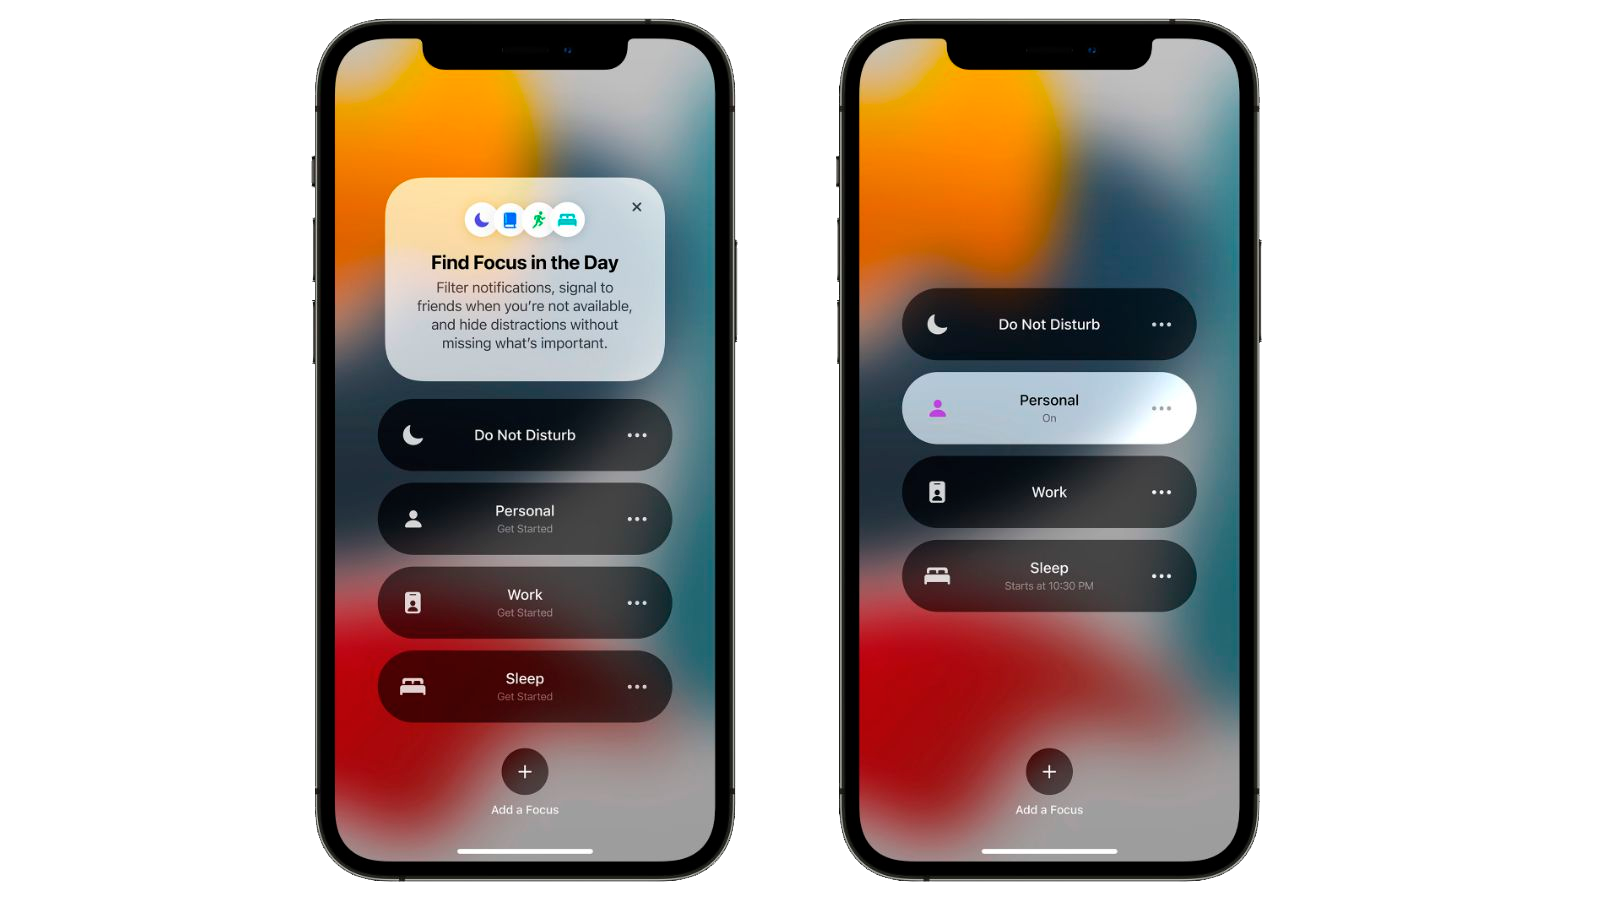 With the help of Focus you can manage your notifications in Apple devices